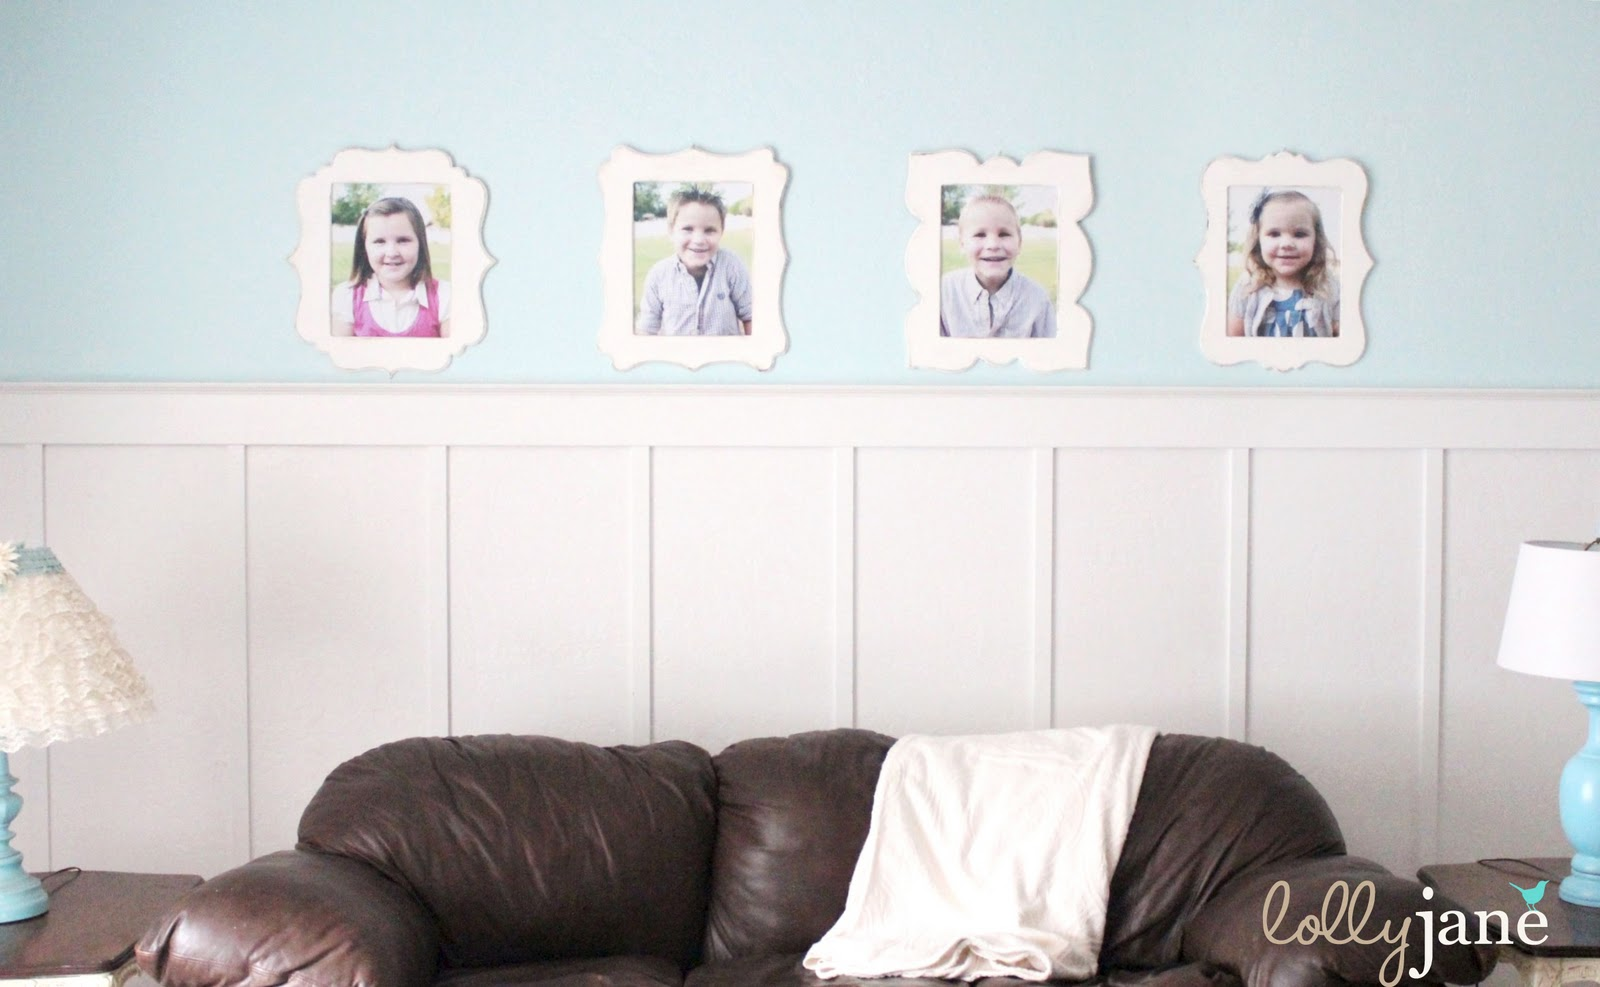 How to hang pictures with a pop tab the 1114 frames fit the wall space perfectly and is a cute way to display my 4 kiddos portraits and our how to hang pictures with a pop tab trick worked jeuxipadfo Choice Image